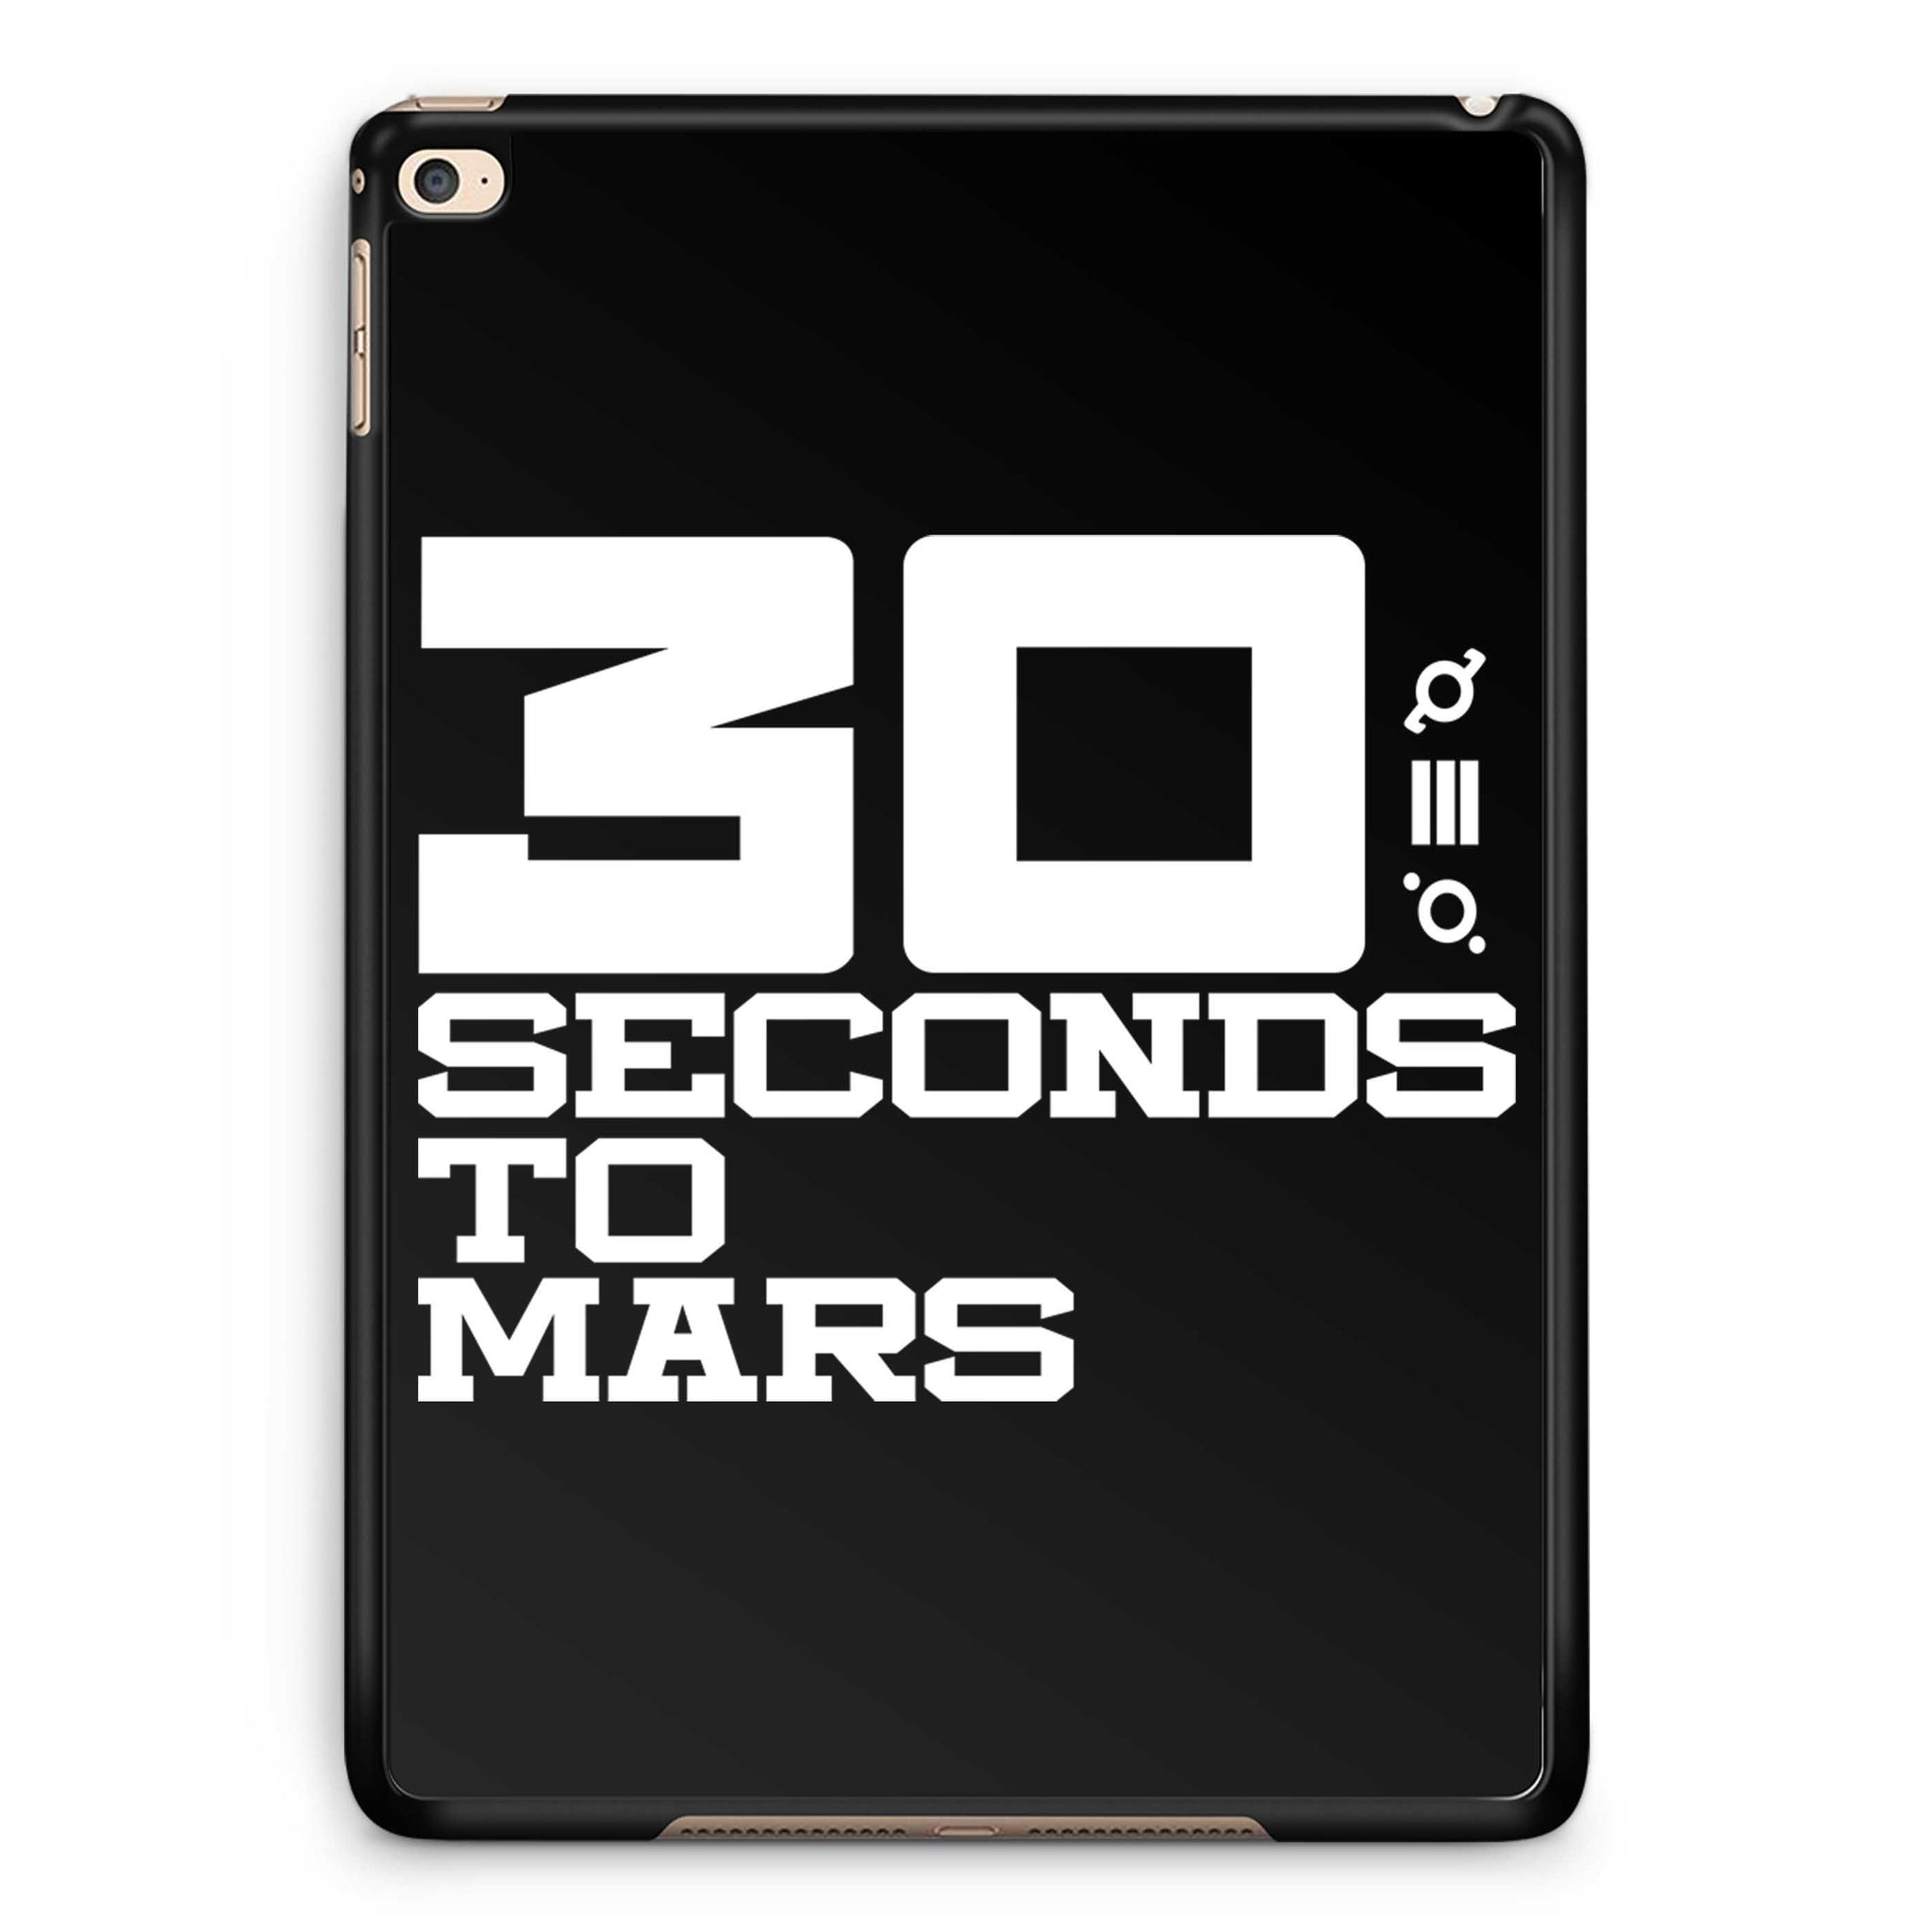 30 Seconds To Mars iPad Air 2| iPad 2 / 3 / 4 | iPad Mini / Mini 2 Case